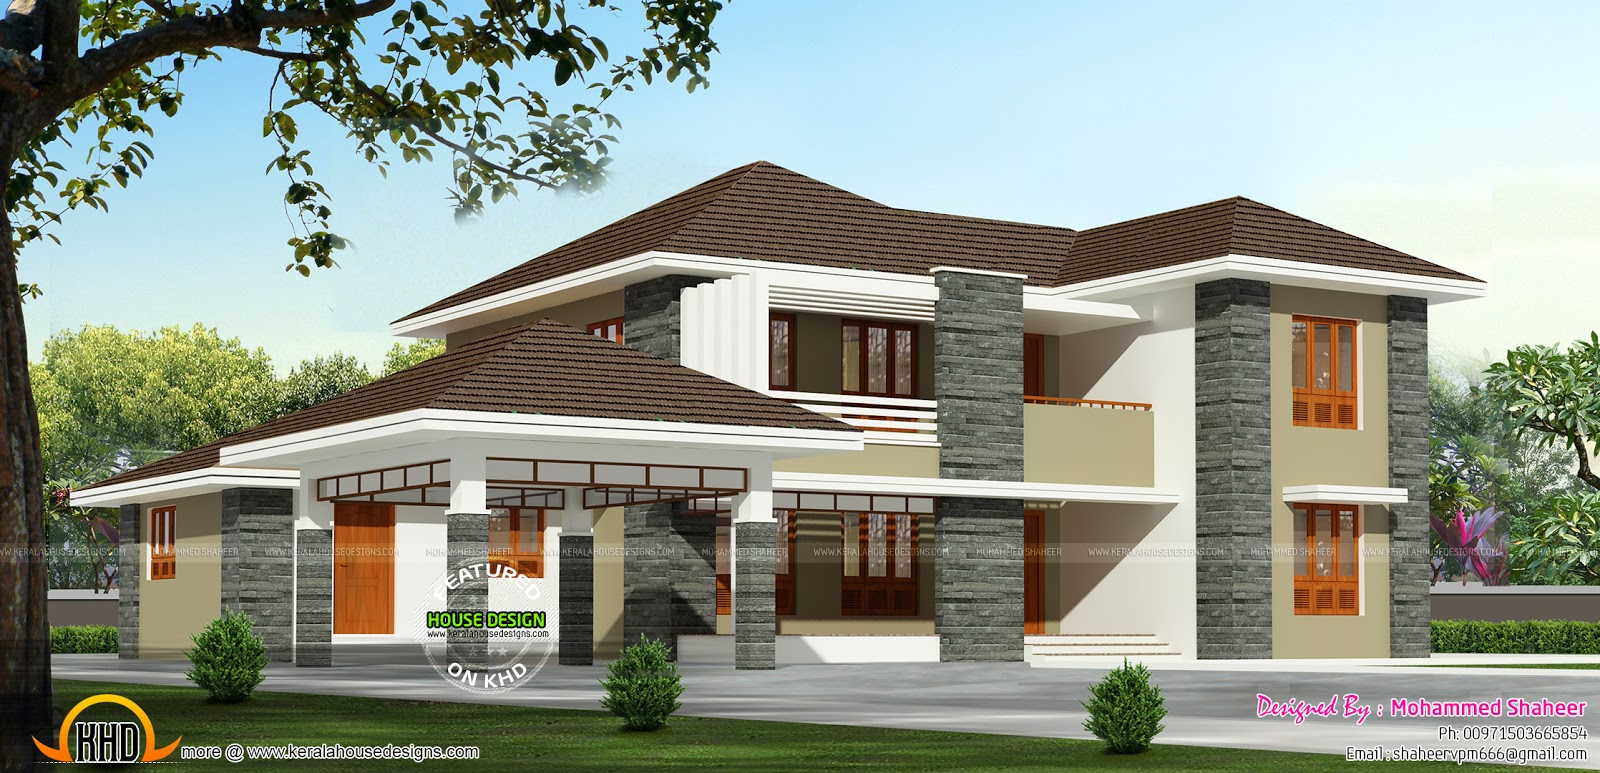 2000 square foot house kerala home design and floor plans for Home designs 2000 sq ft